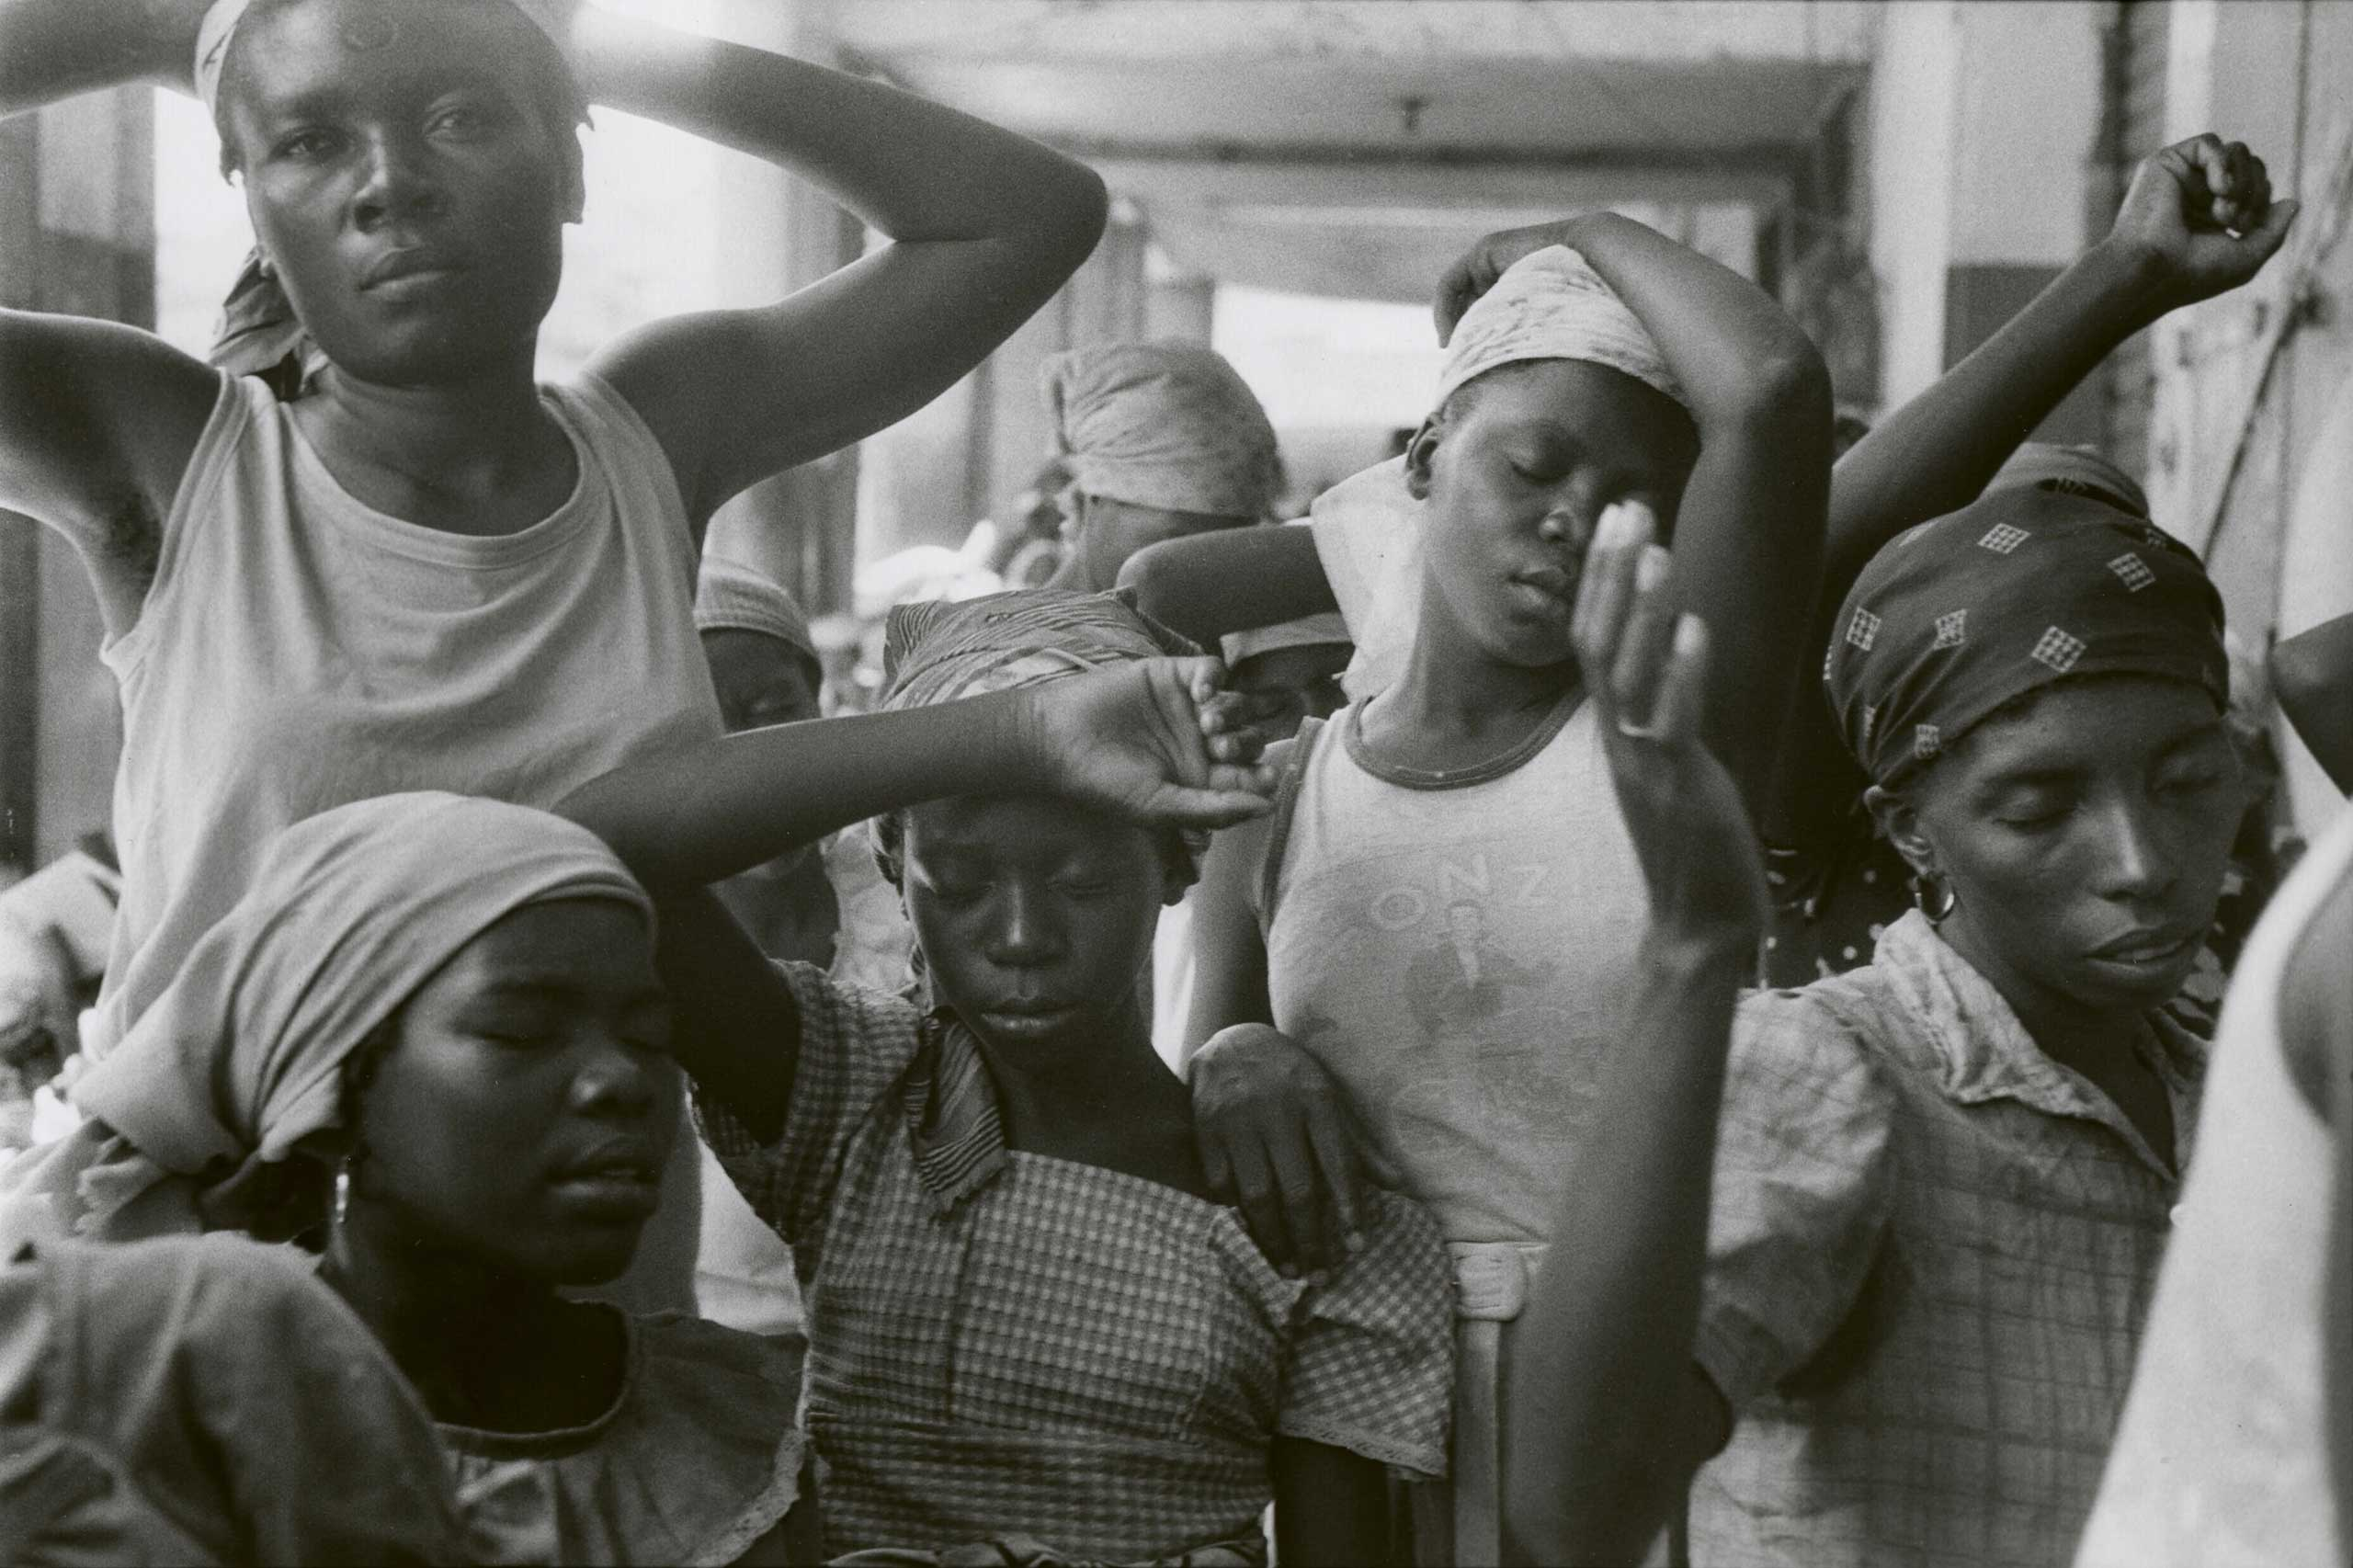 Danny Lyon: Journey, Edwynn Houk Gallery, N.Y.: Sept. 9 - Oct. 15                                                                                             (Caption: The Haitian Women, Port Au Prince, 1986)